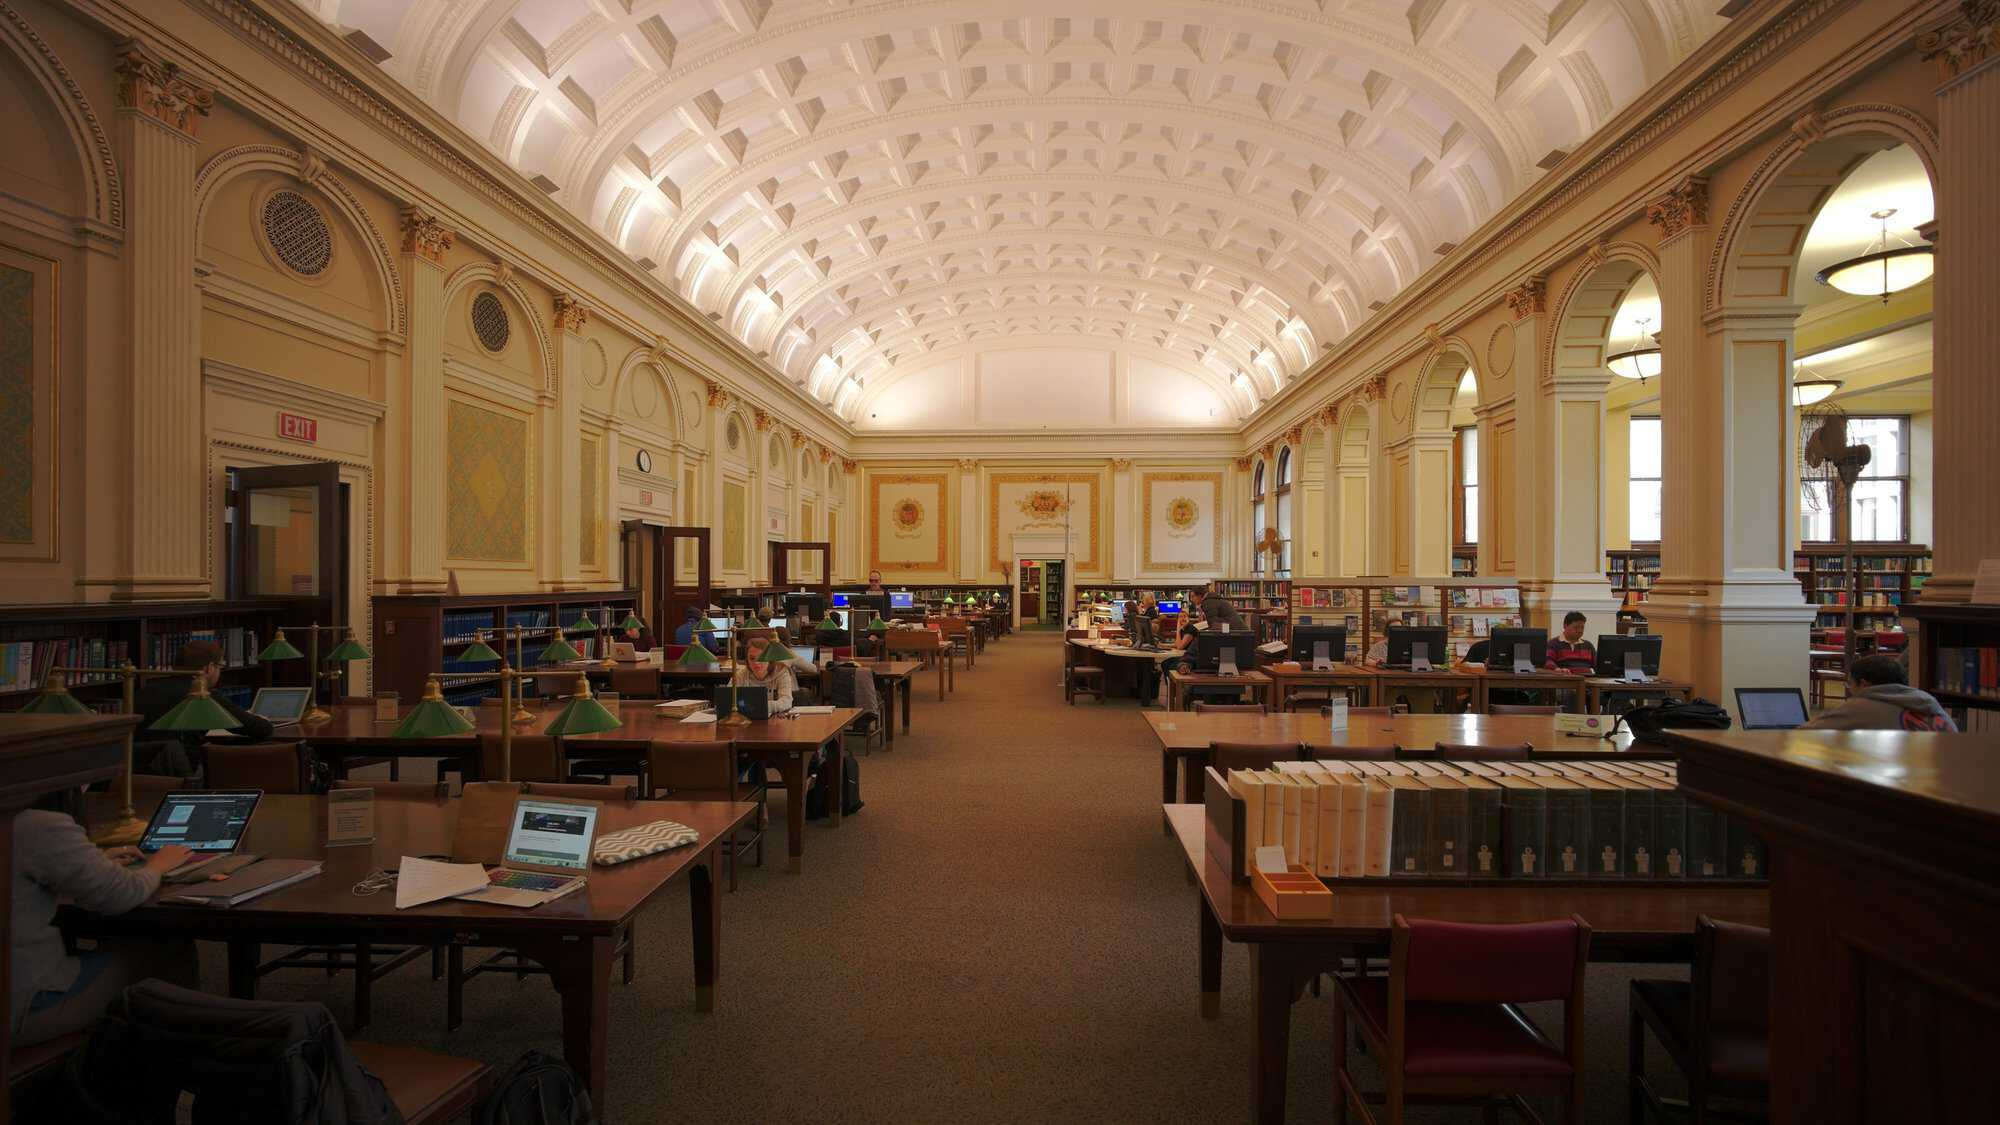 Carnegie_Library_of_Pittsburgh-Interior.jpg